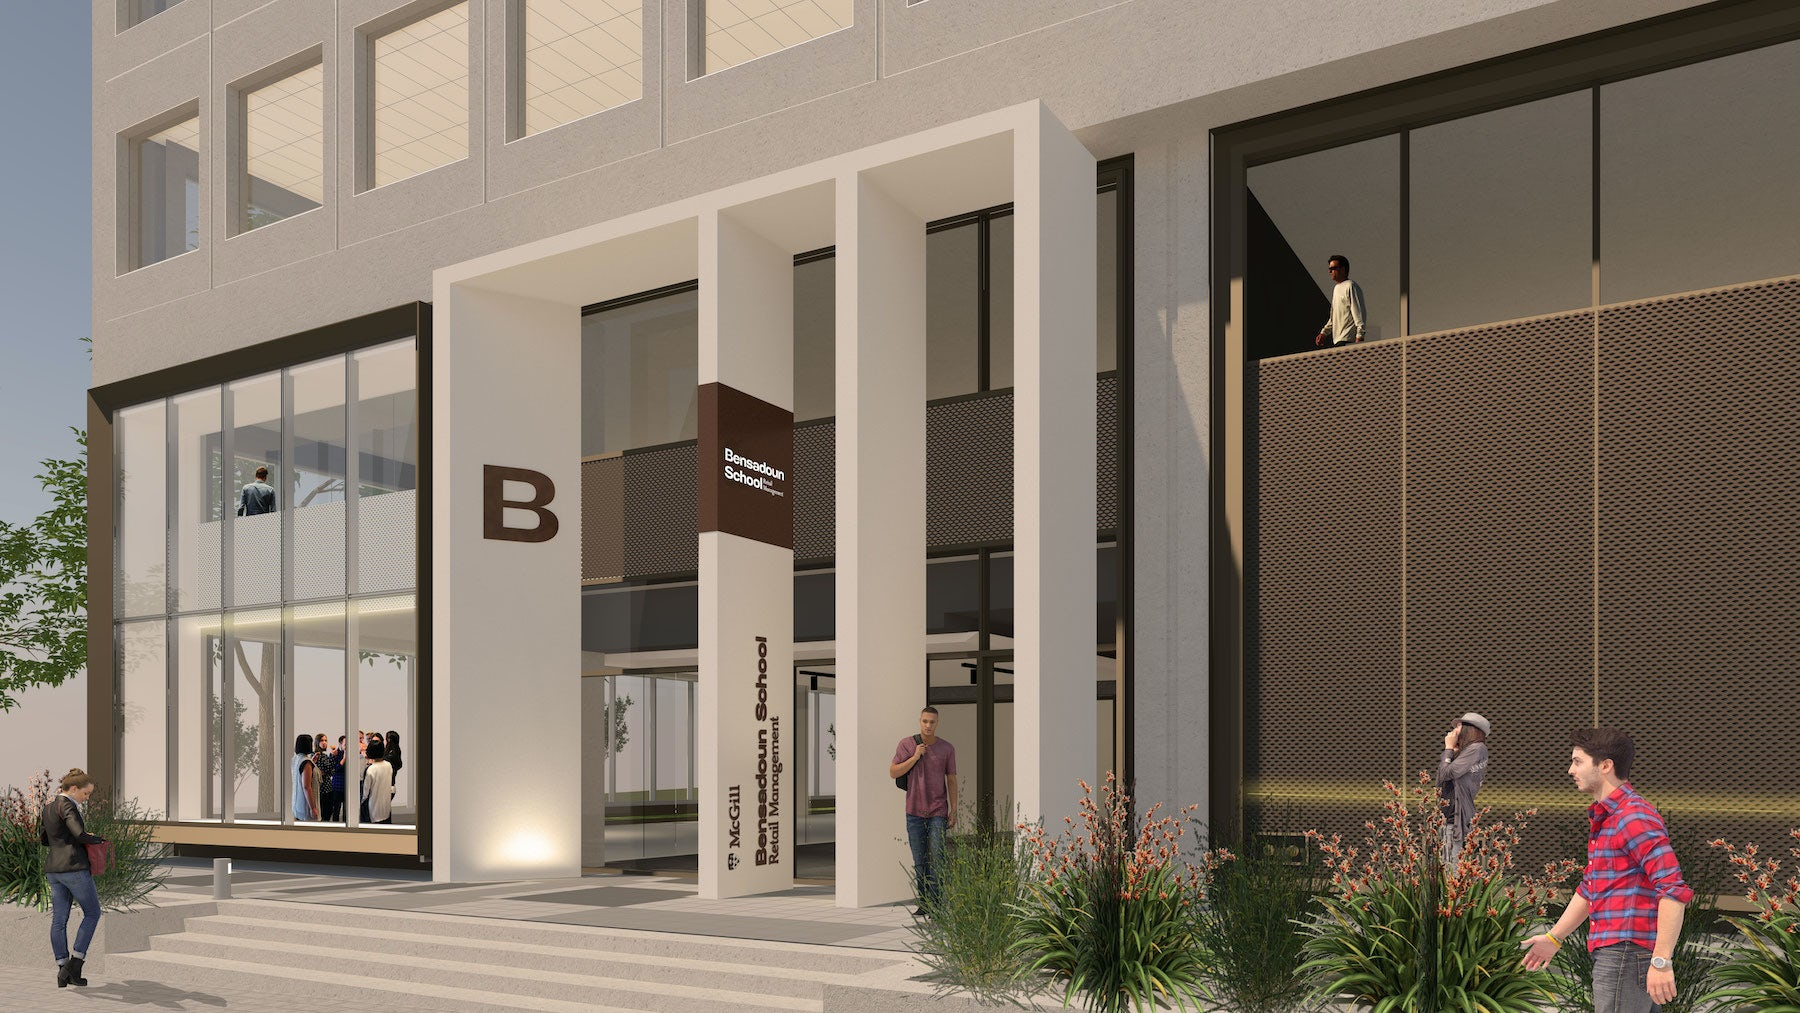 Rendering of the Bensadoun School of Retail Management | Source: Courtesy